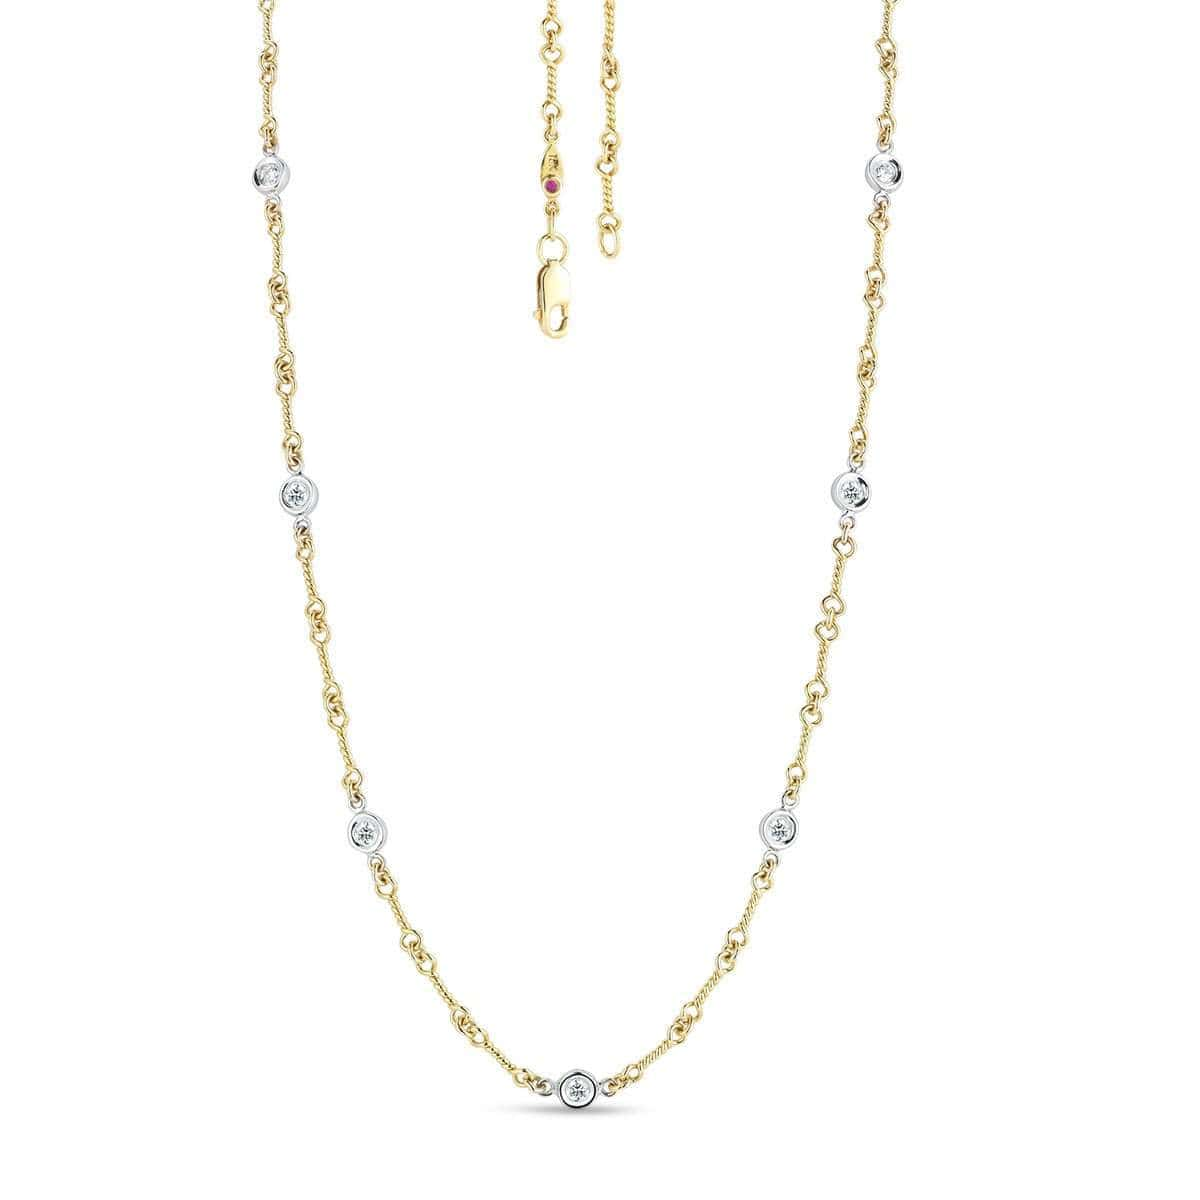 18k Yellow Gold & Diamond Necklace - 001824AJCHX0-Roberto Coin-Renee Taylor Gallery